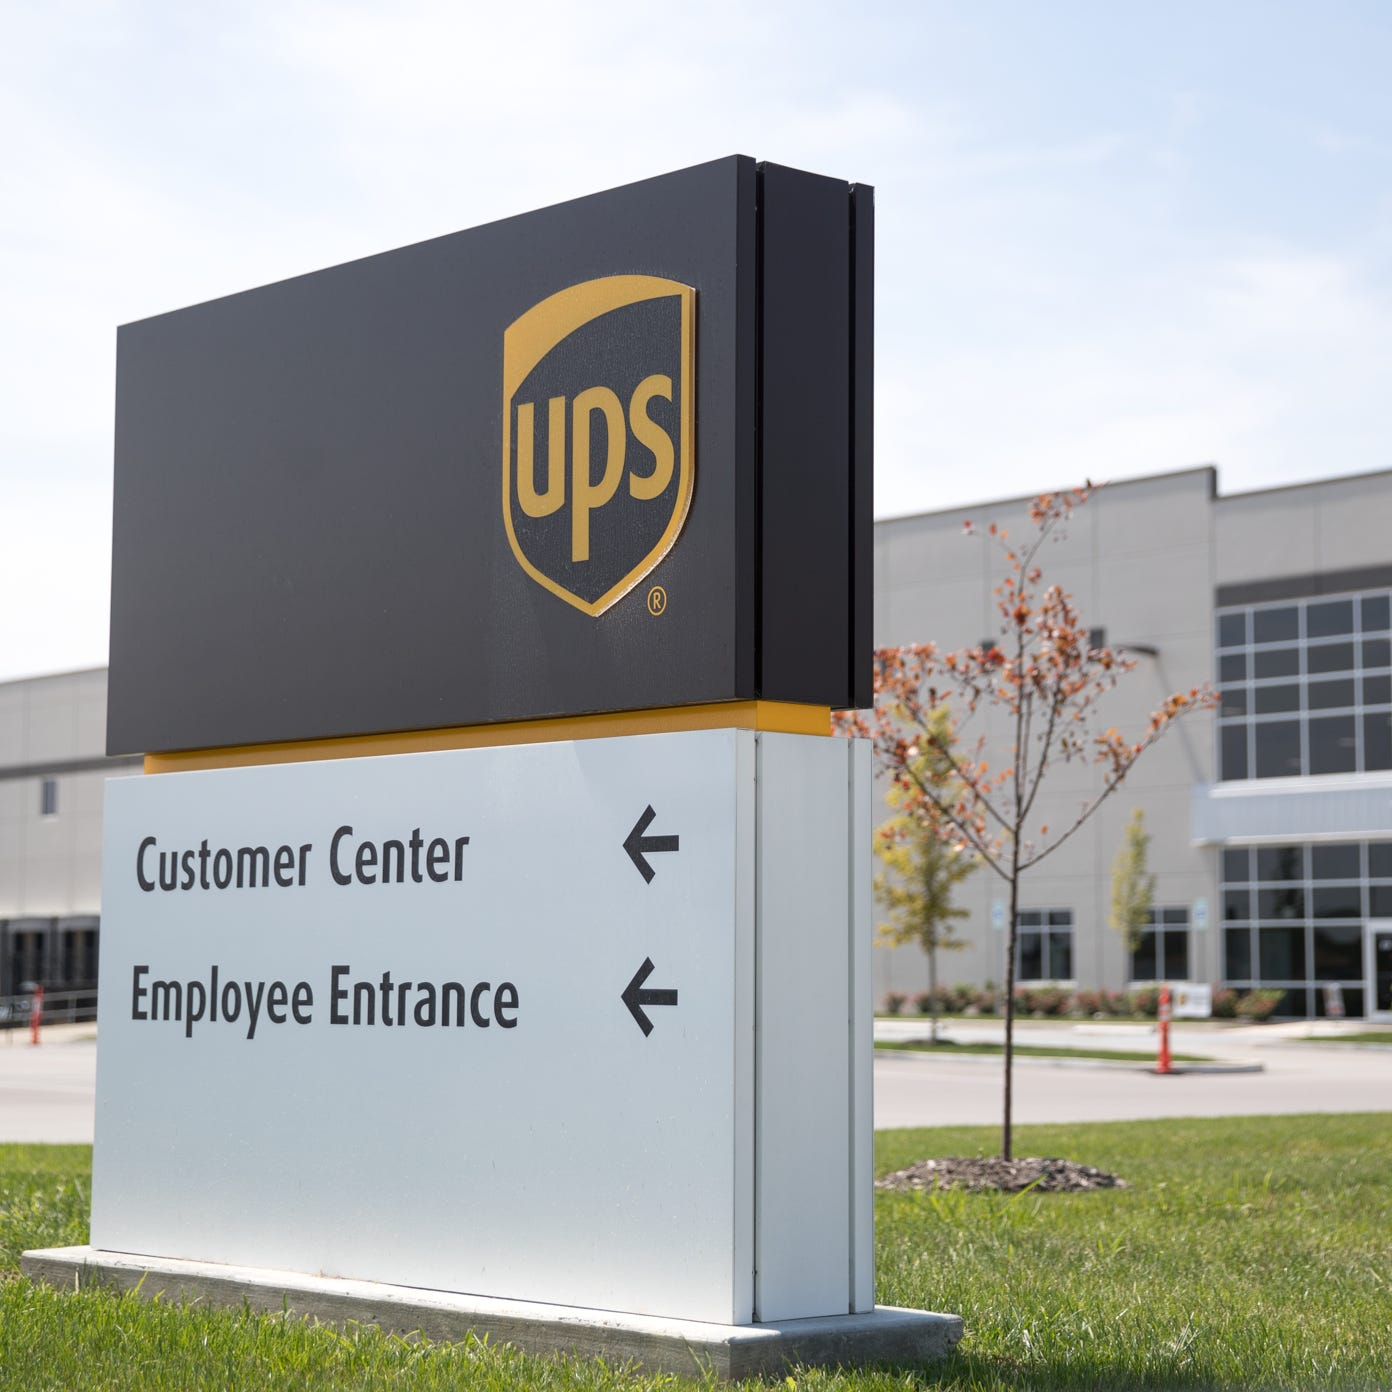 The sound of construction work halting at UPS' Plainfield hub: 'We rise together, homie!'